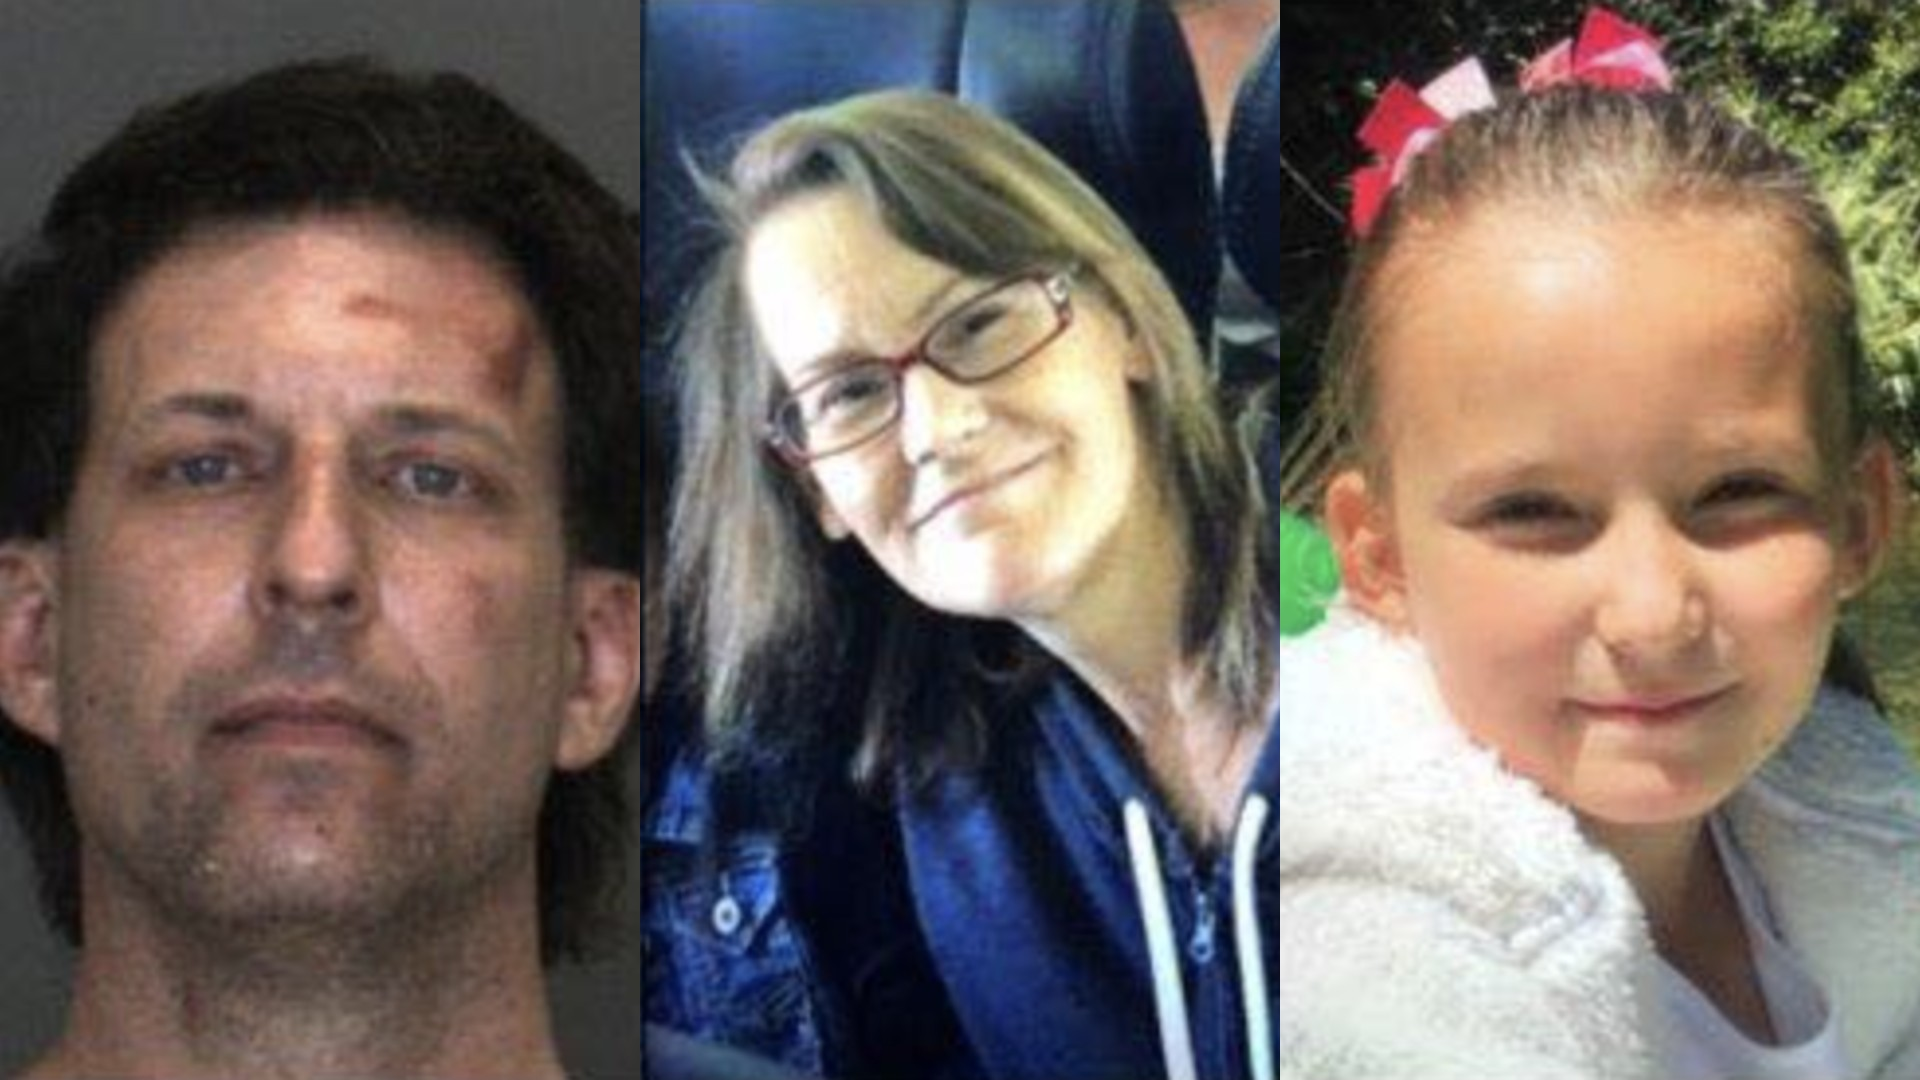 John Roberts, 49, Julie Englehart, 49, and their daughter, Brooke Roberts, 11, are seen in images provided by the San Bernardino County Sheriff's Department.